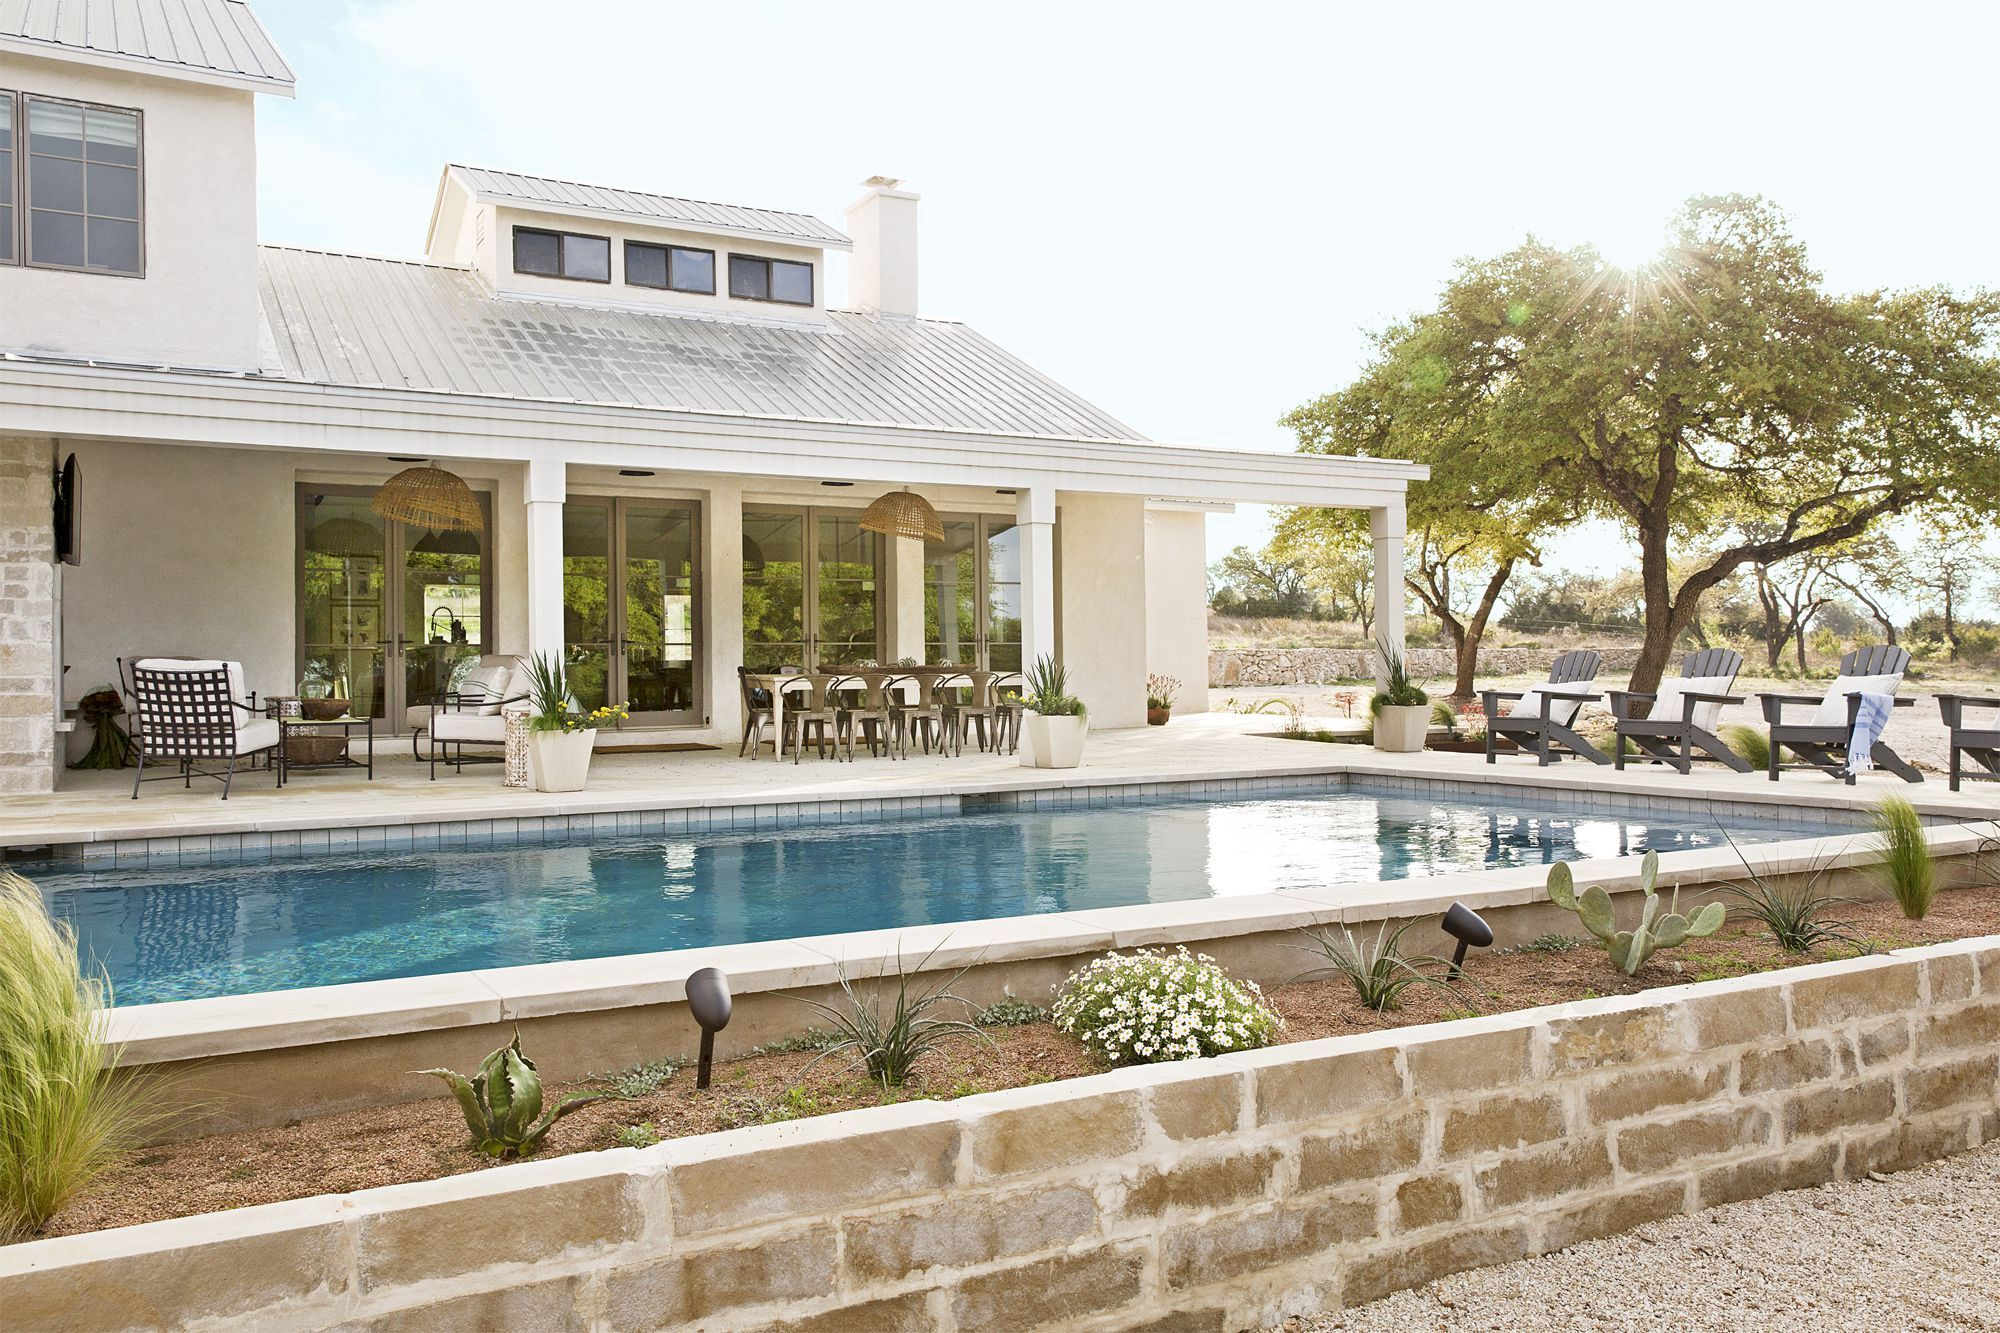 22 in ground pool designs best swimming pool design ideas for your rh countryliving com pool house designs with outdoor kitchen